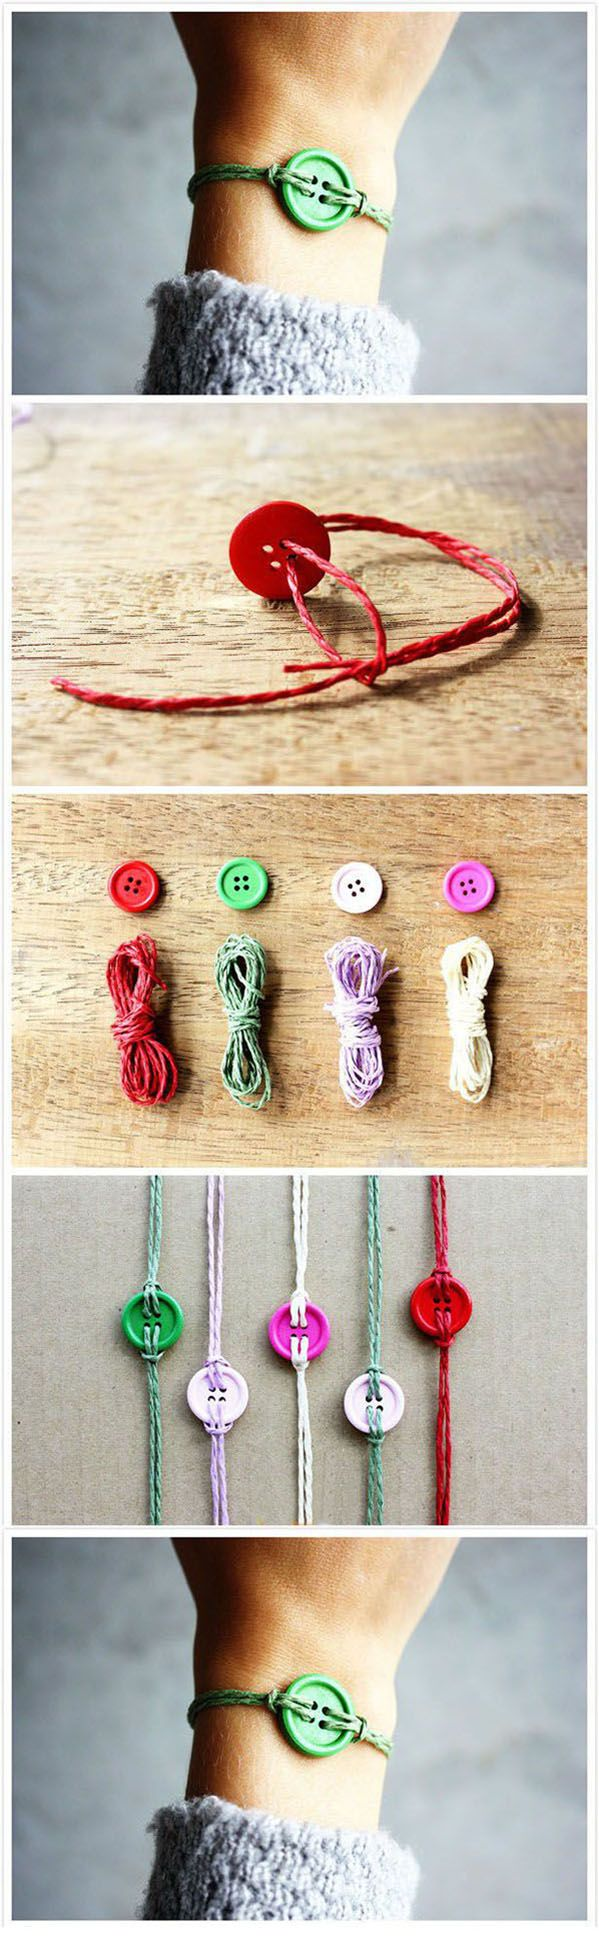 Diy Beautiful Button Bracelet | DIY & Crafts Tutorials